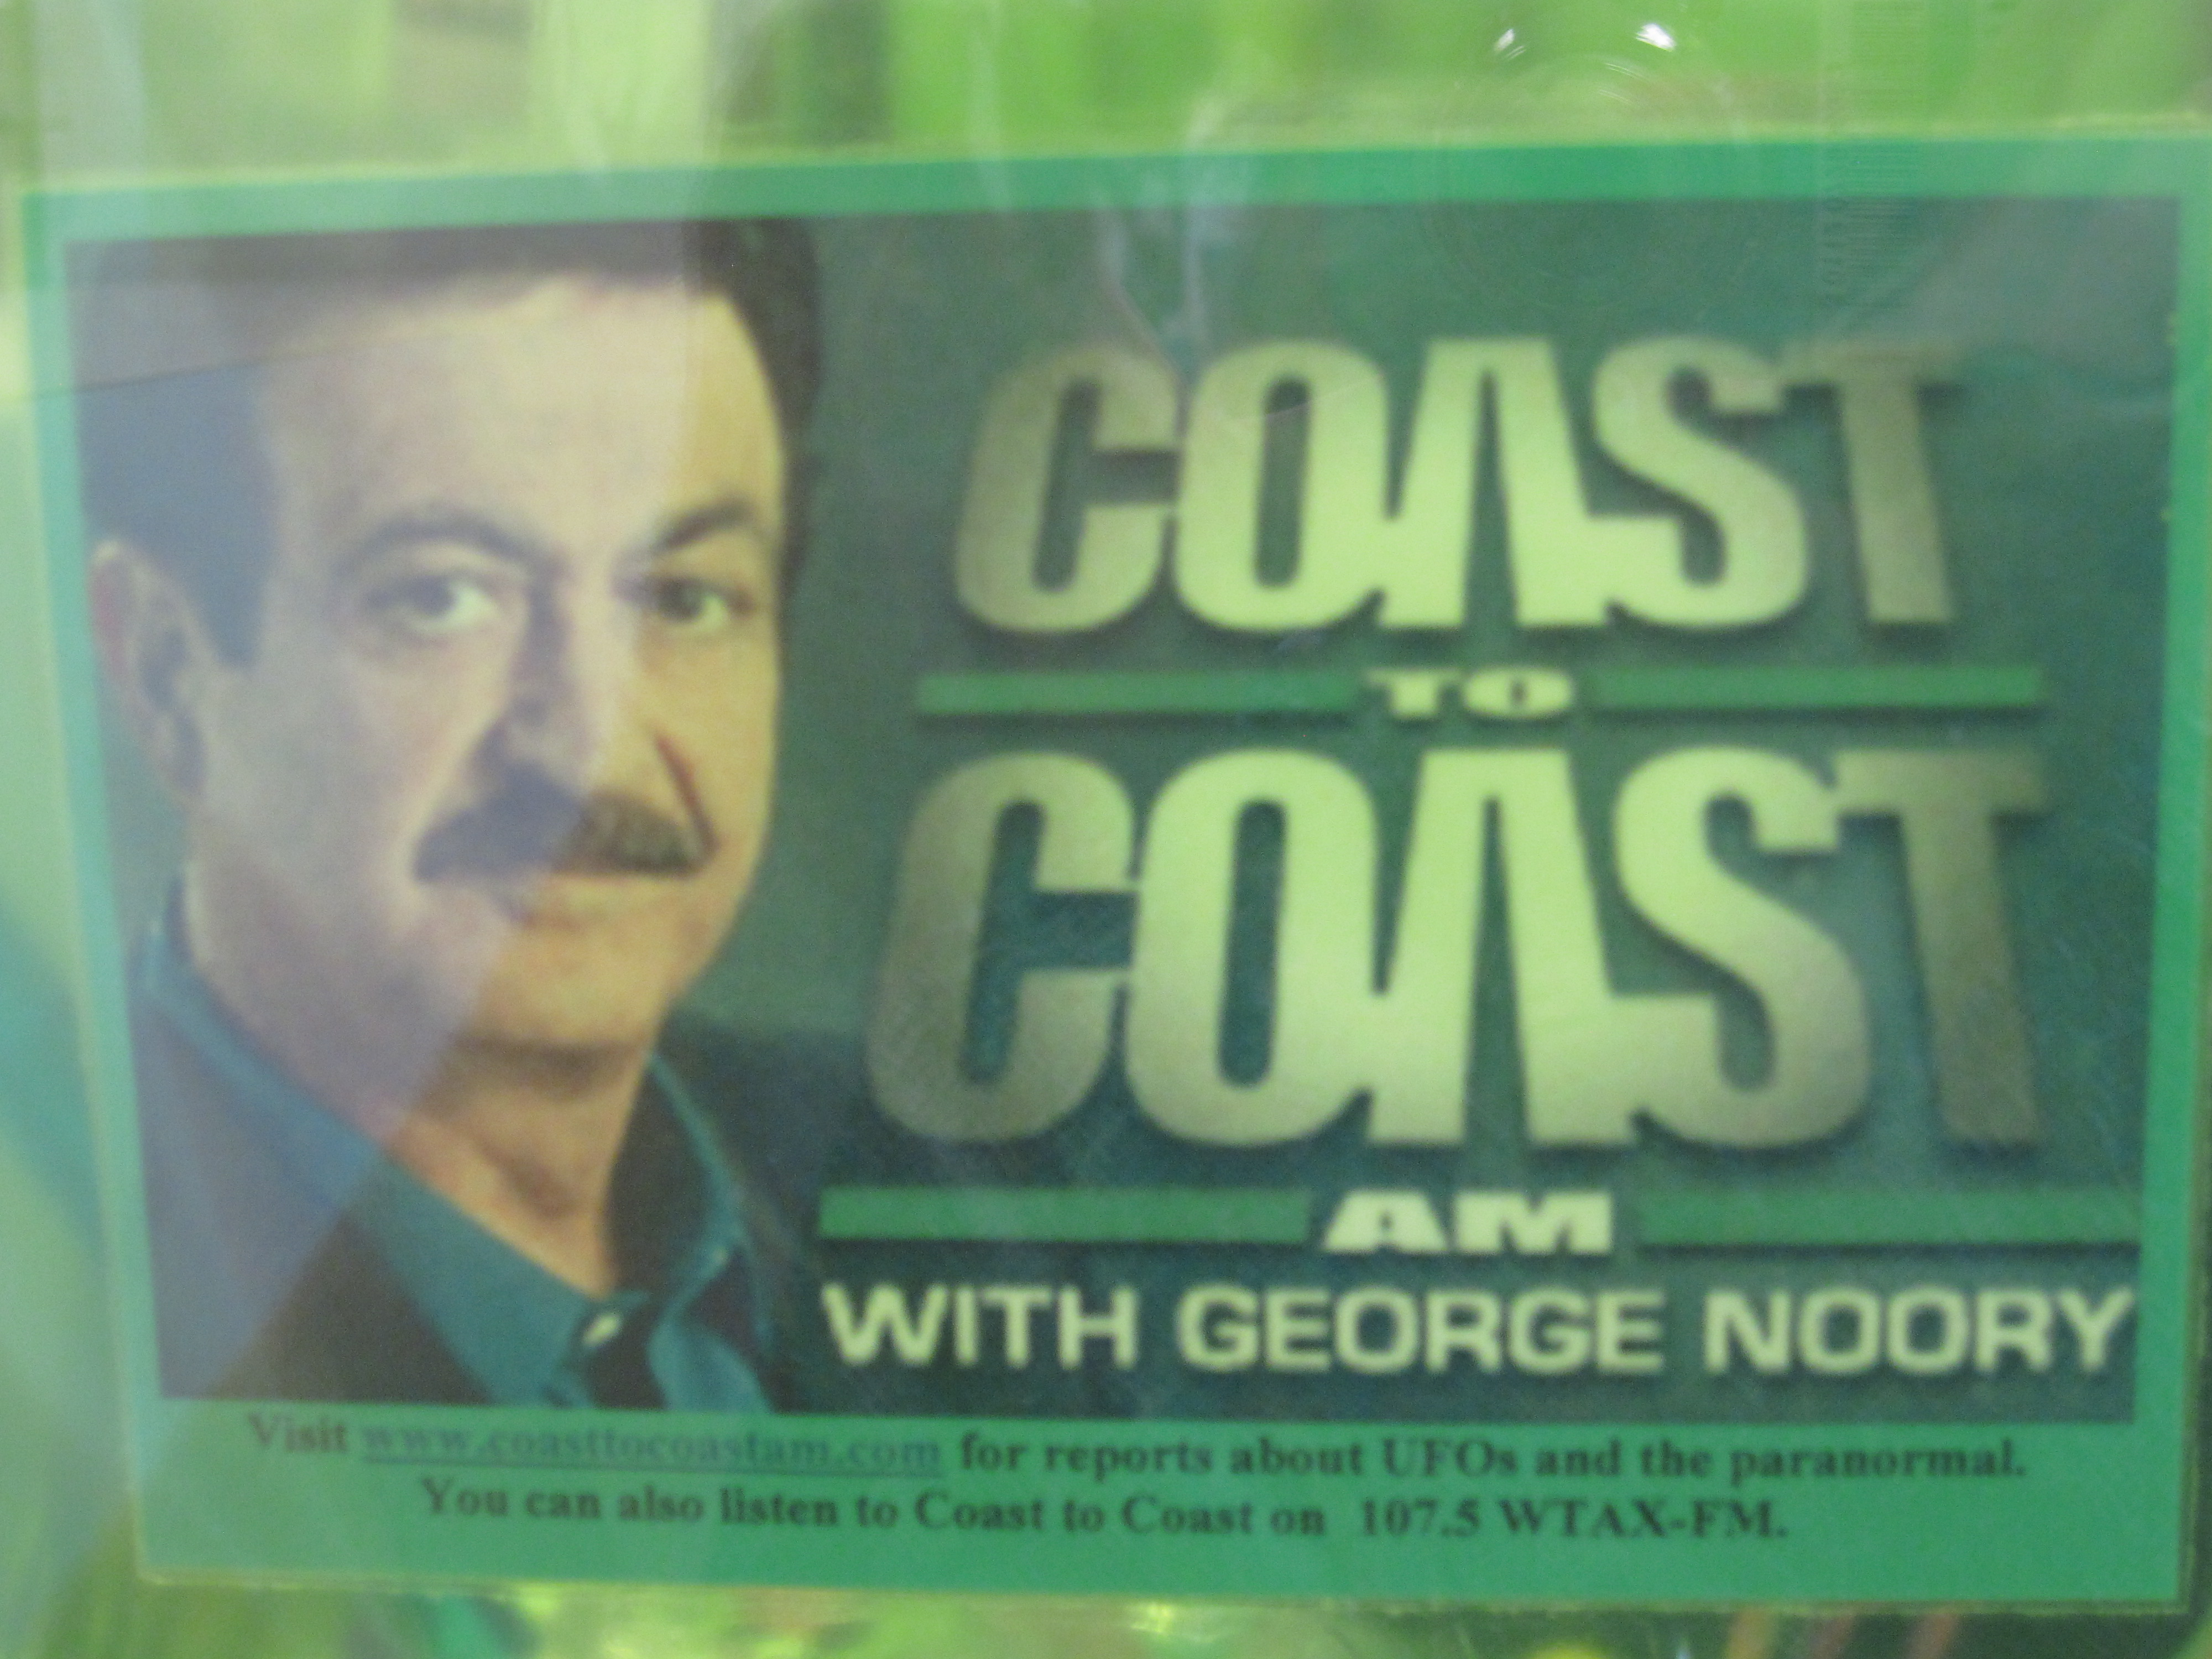 Visit www.coasttocoastam.com for reports about UFOs and the paranormal. You can also listen to Coast to Coast on  107.5 WTAX-FM.